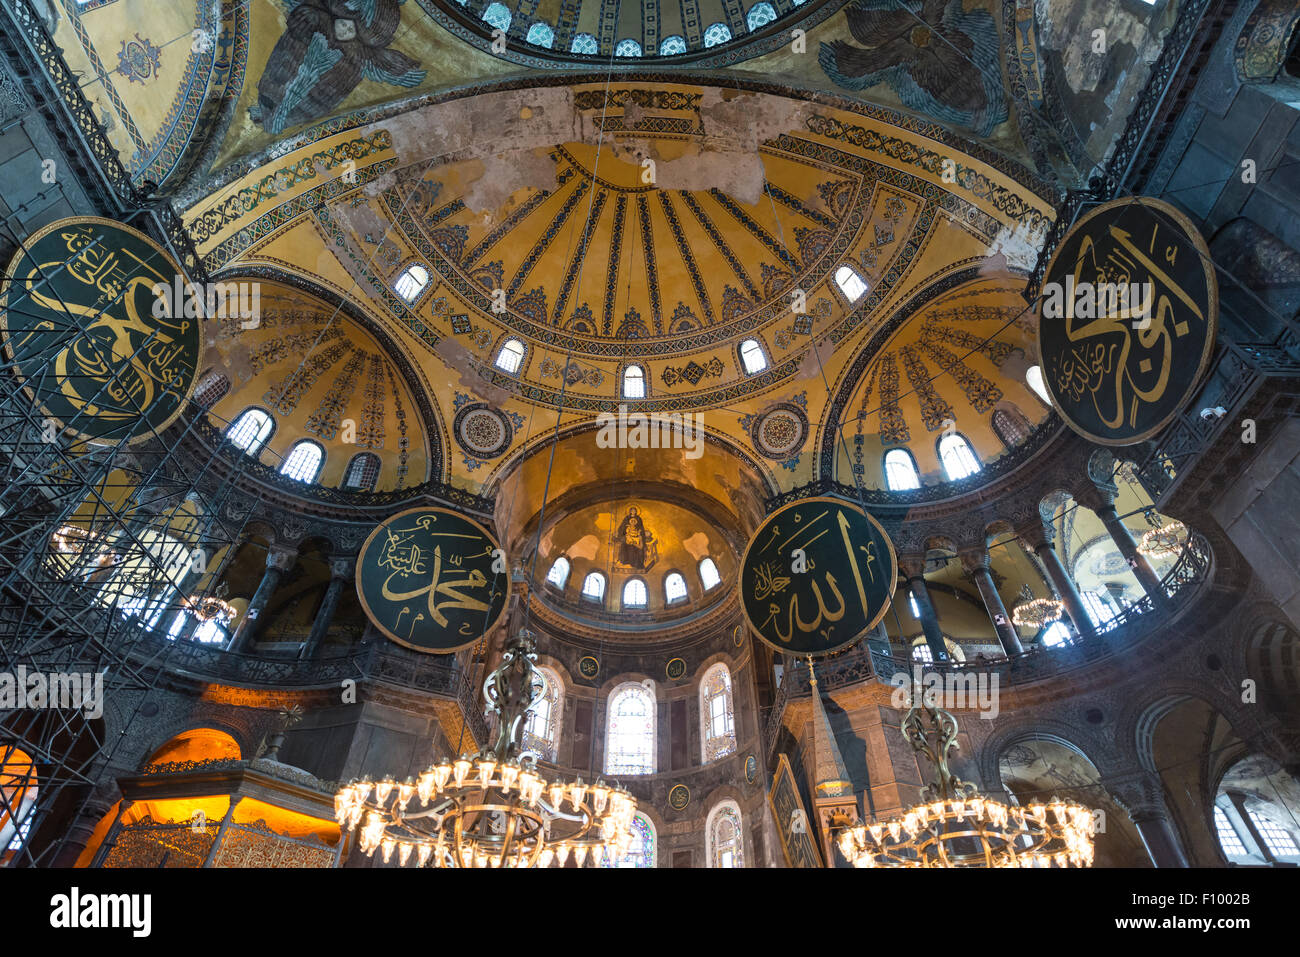 Main area of the Hagia Sophia, dome, Ayasofya, interior, UNESCO World Heritage Site, European Side, Istanbul, Turkey - Stock Image